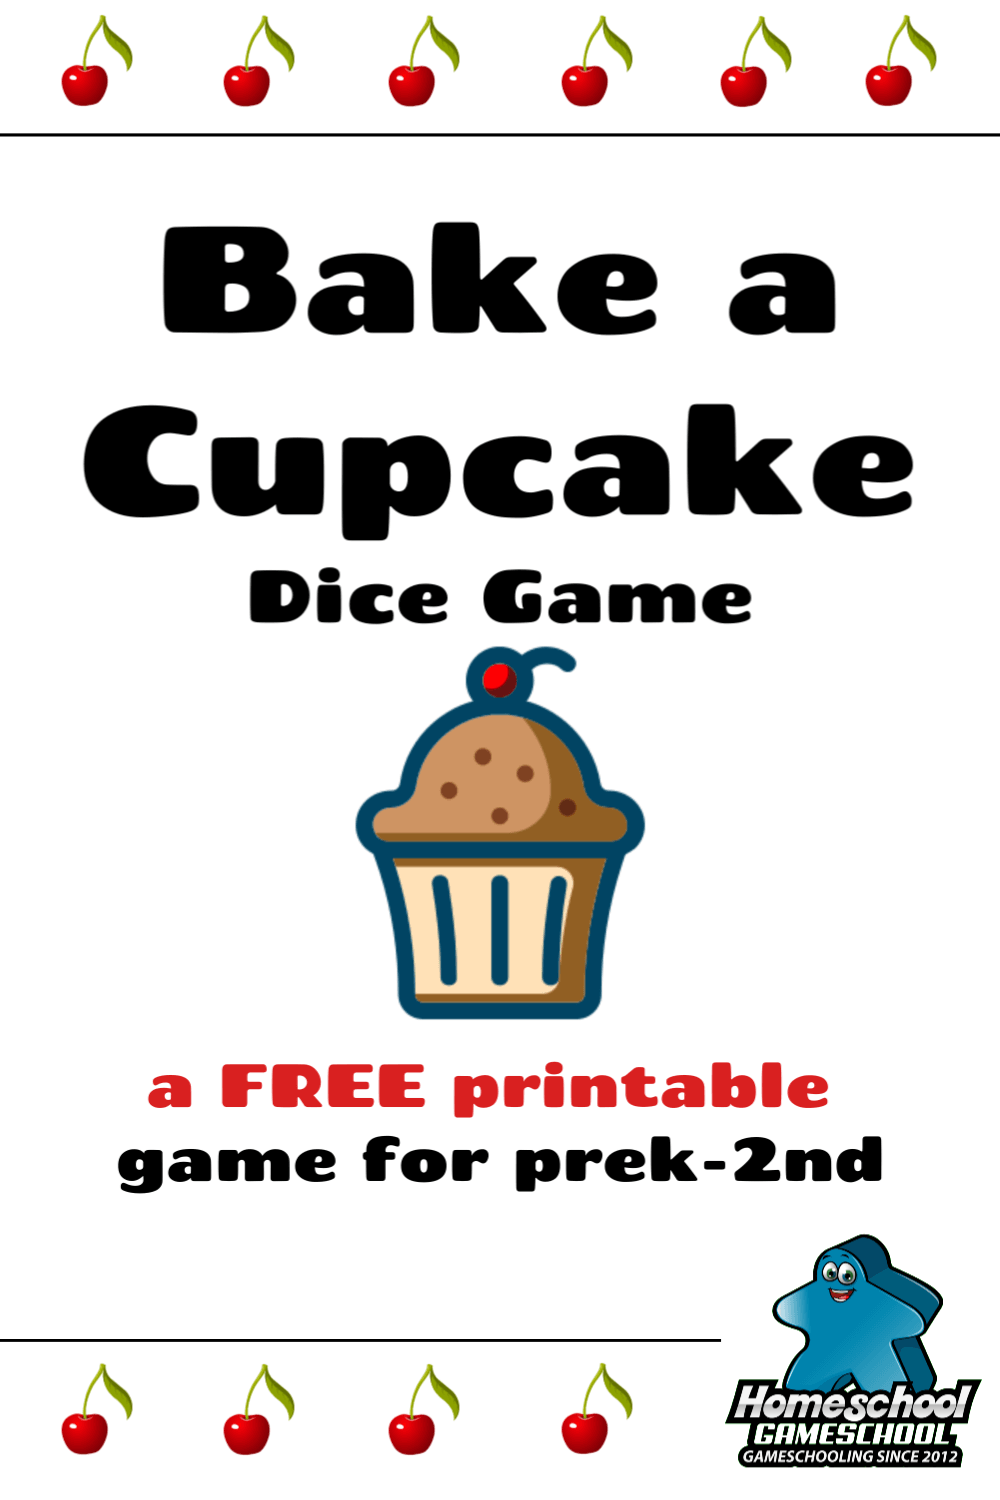 Bake a Cupcake Dice Game